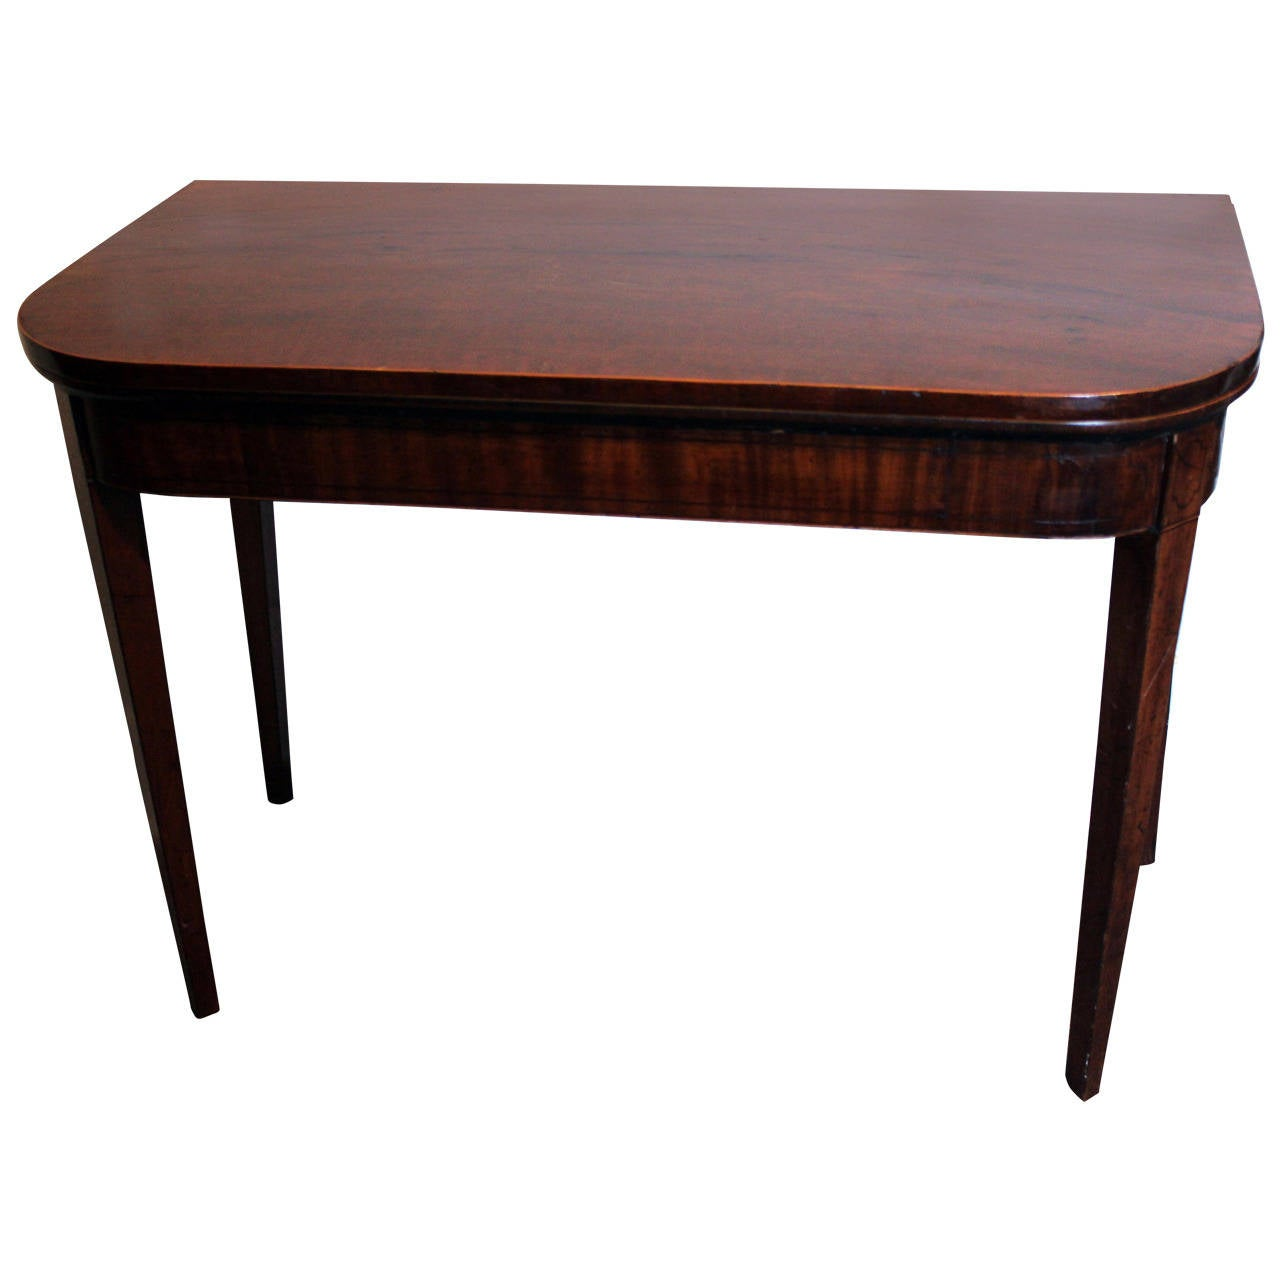 Georgian Mahogany Game Table at 1stdibs : 1992542l from www.1stdibs.com size 1280 x 1280 jpeg 61kB